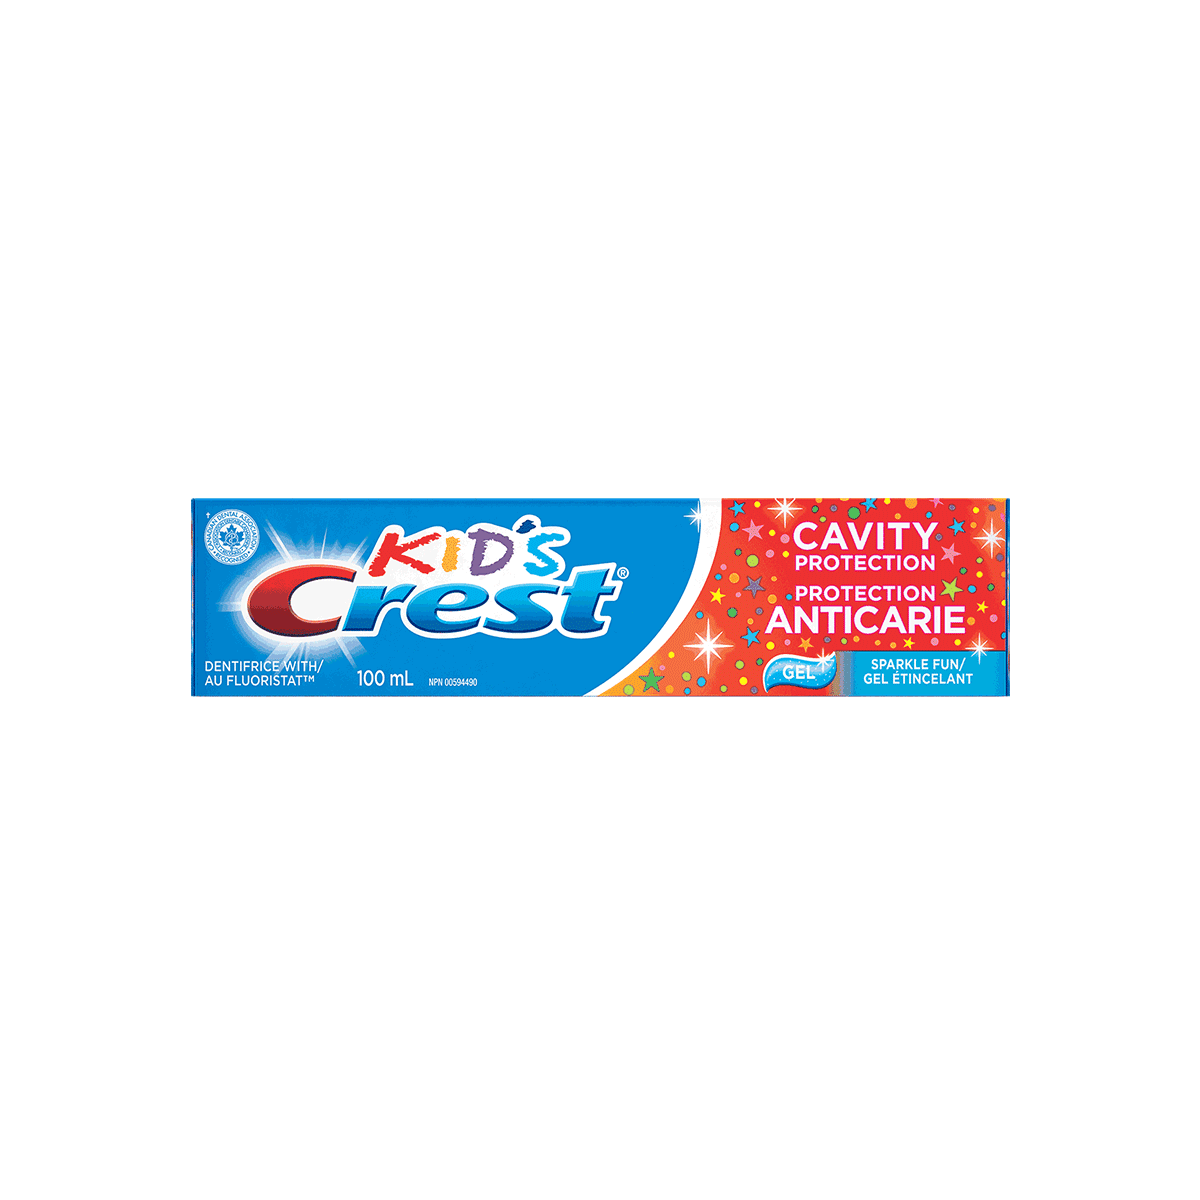 Crest Kids Cavity Protection Sparkle Fun Gel Toothpaste